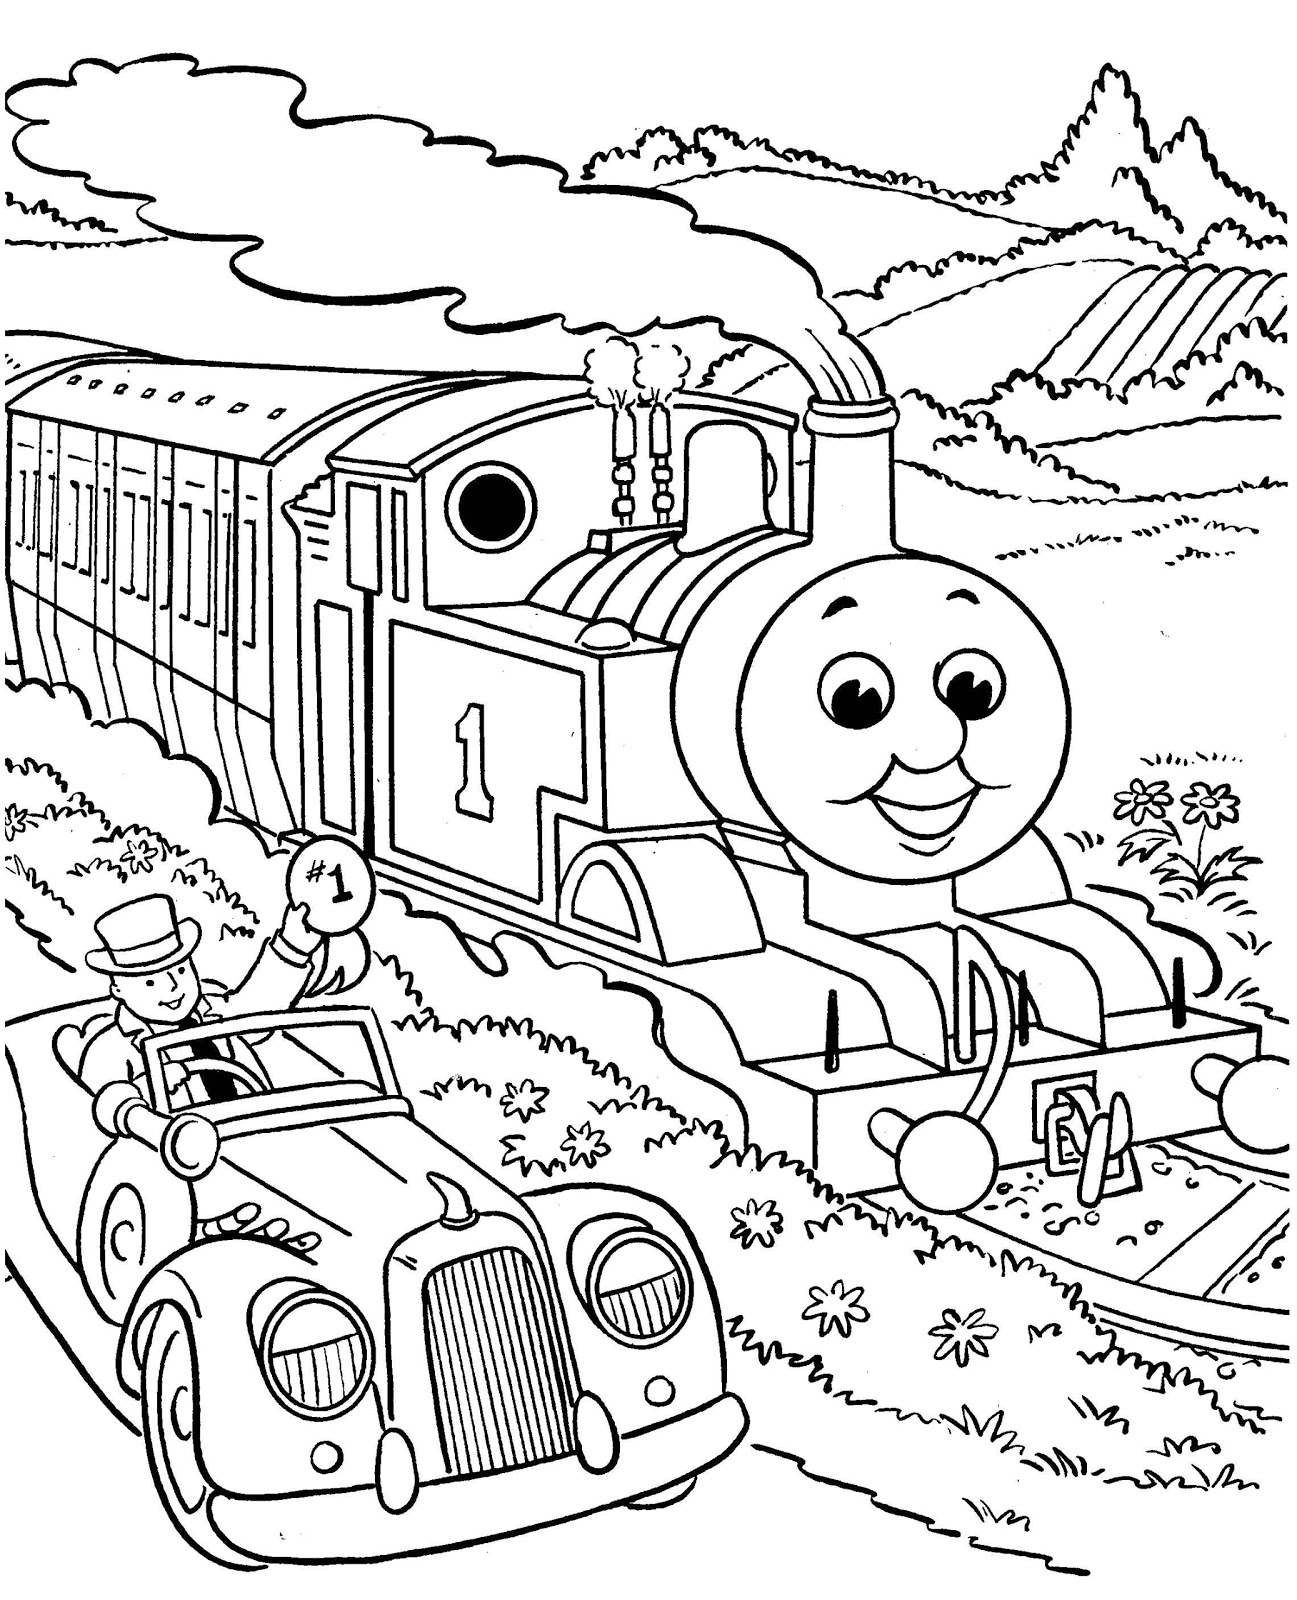 printable thomas the train coloring pages free printable coloring pages for boys coloring pages